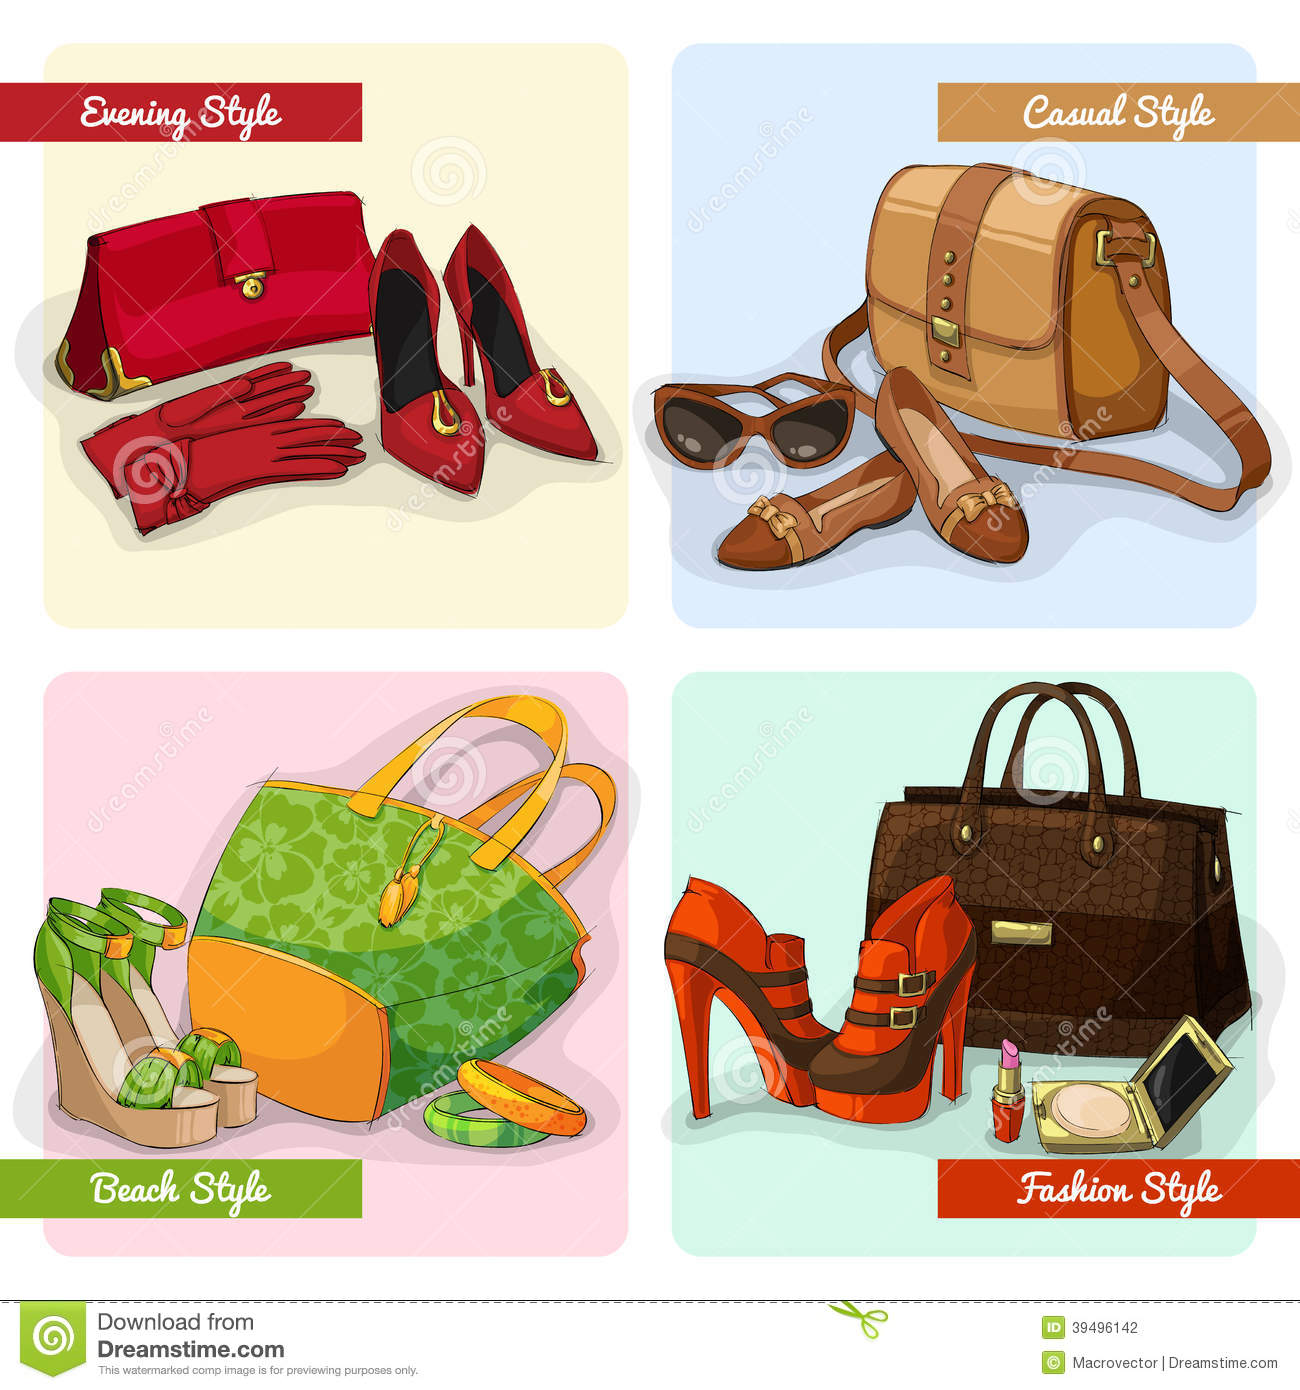 Free shipping on accessories for your handbag and phone cases at gtacashbank.ga Shop for key chains, charms and more. Totally free shipping and returns.